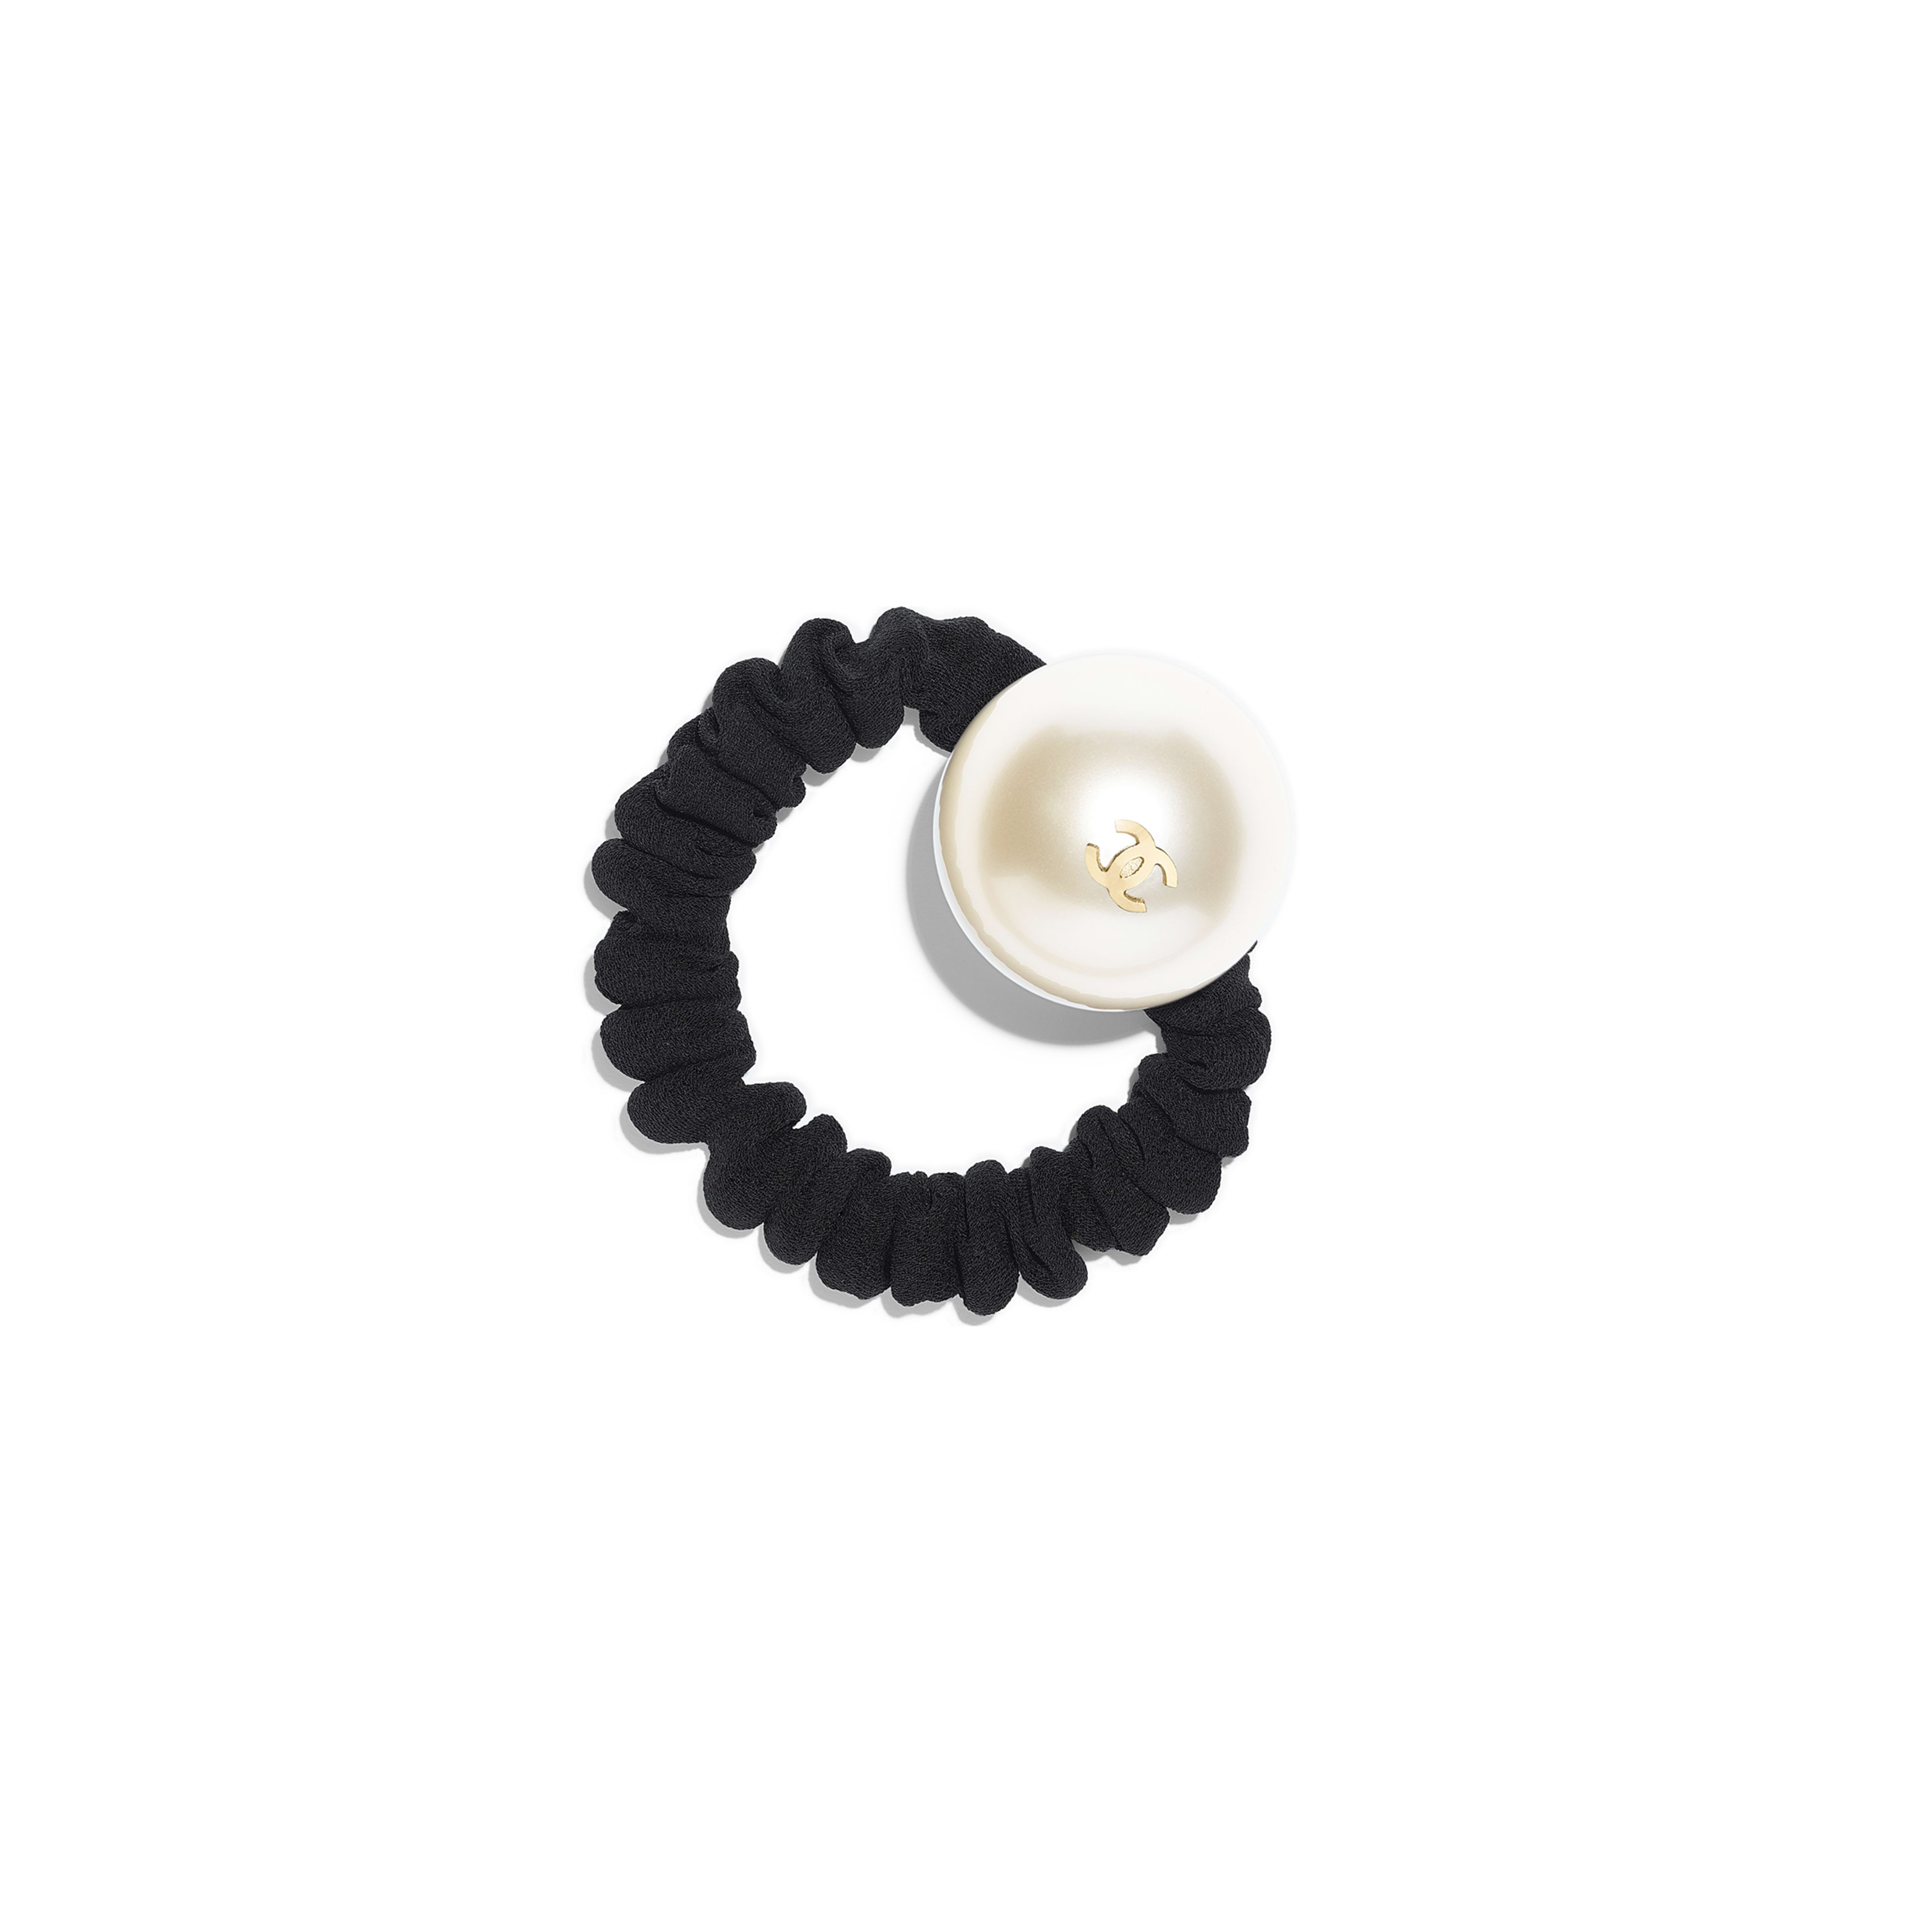 Hair accessory - Black, Gold & Pearly White - Grosgrain, Resin & Metal - Default view - see full sized version